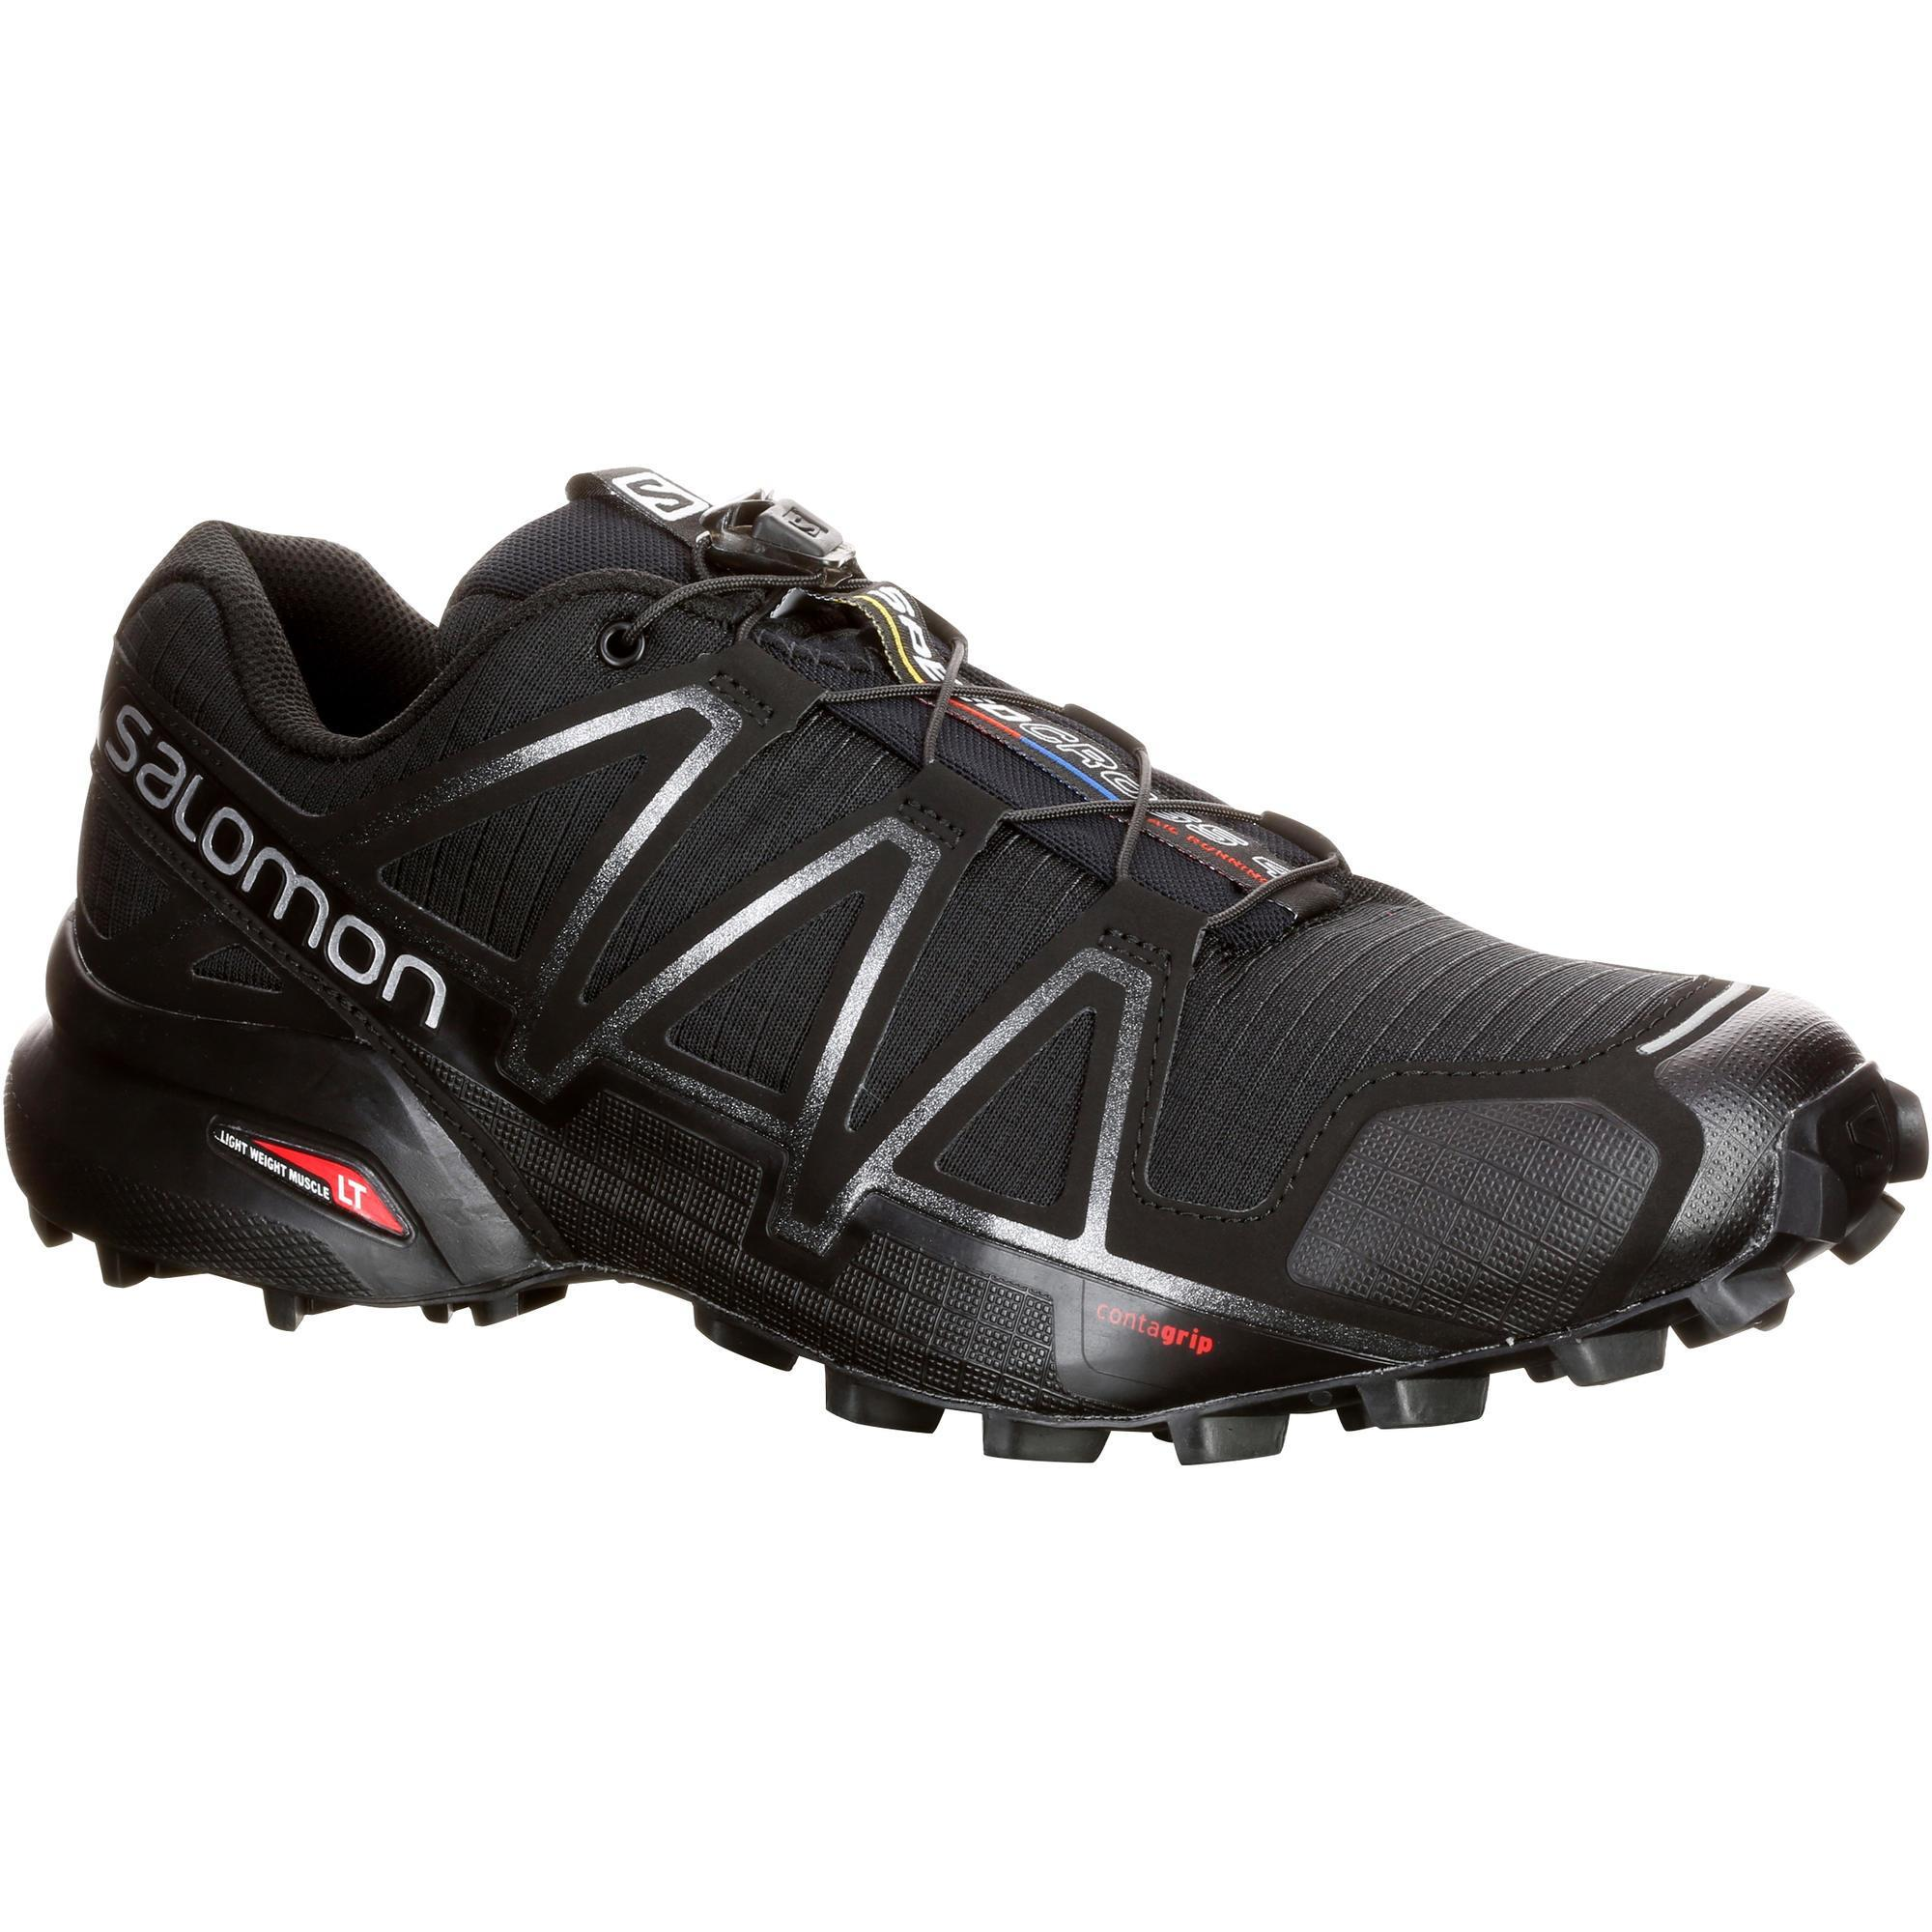 bambas salomon decathlon zapatos